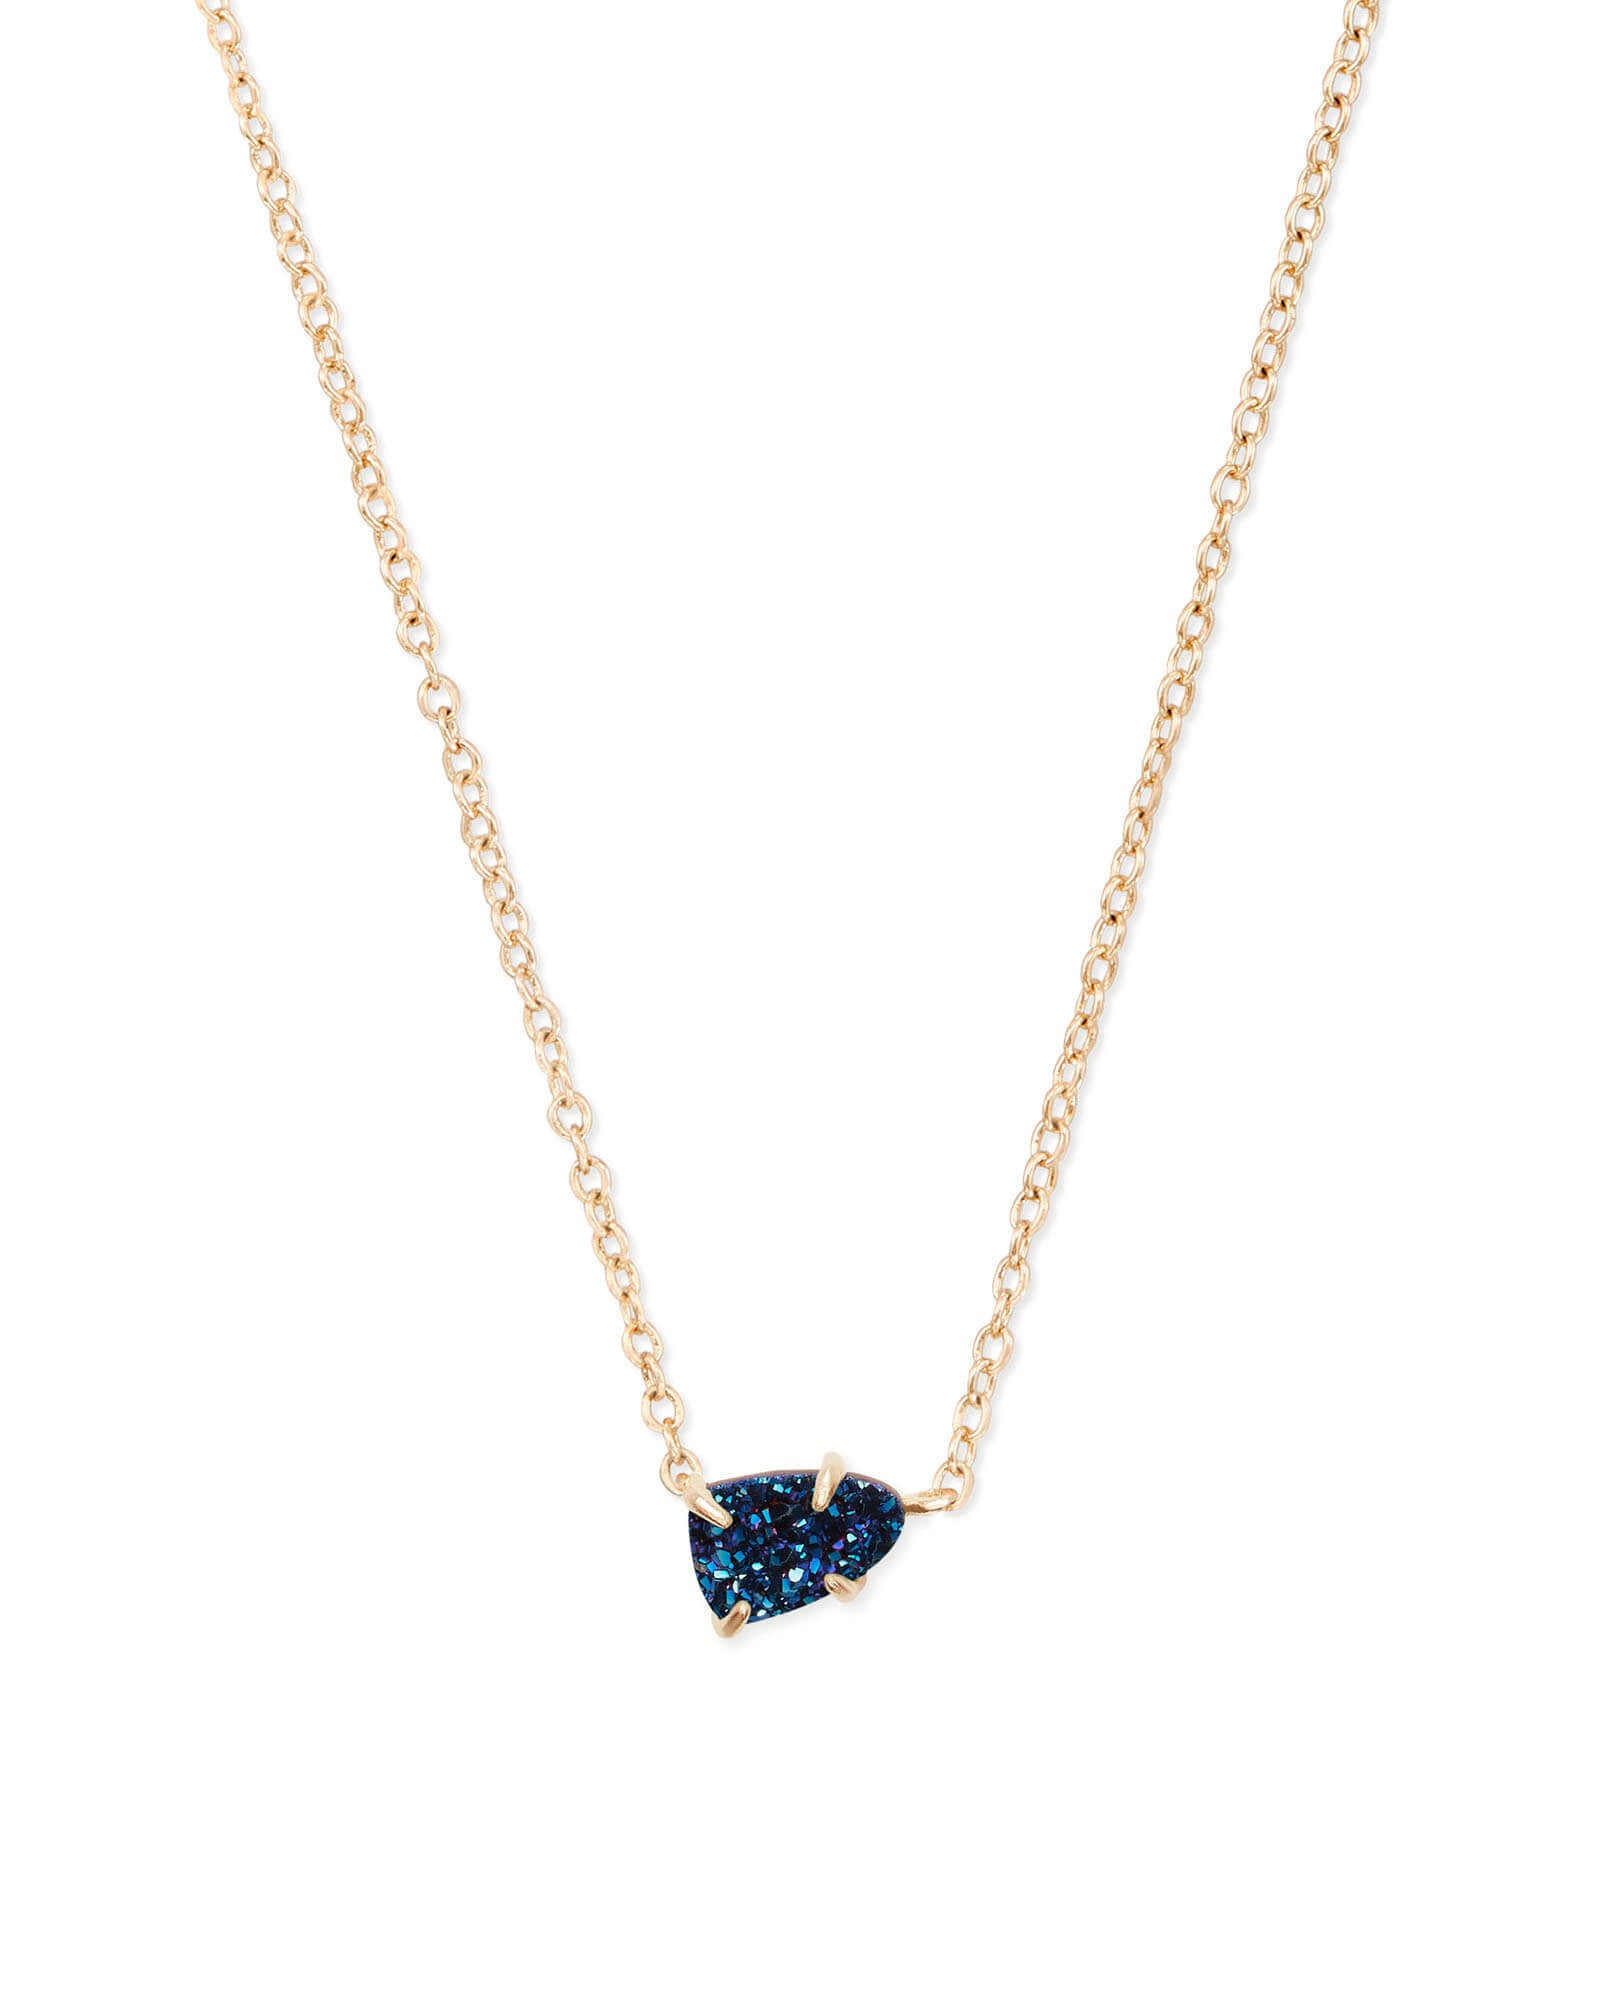 Helga Gold Pendant Necklace in Blue Drusy